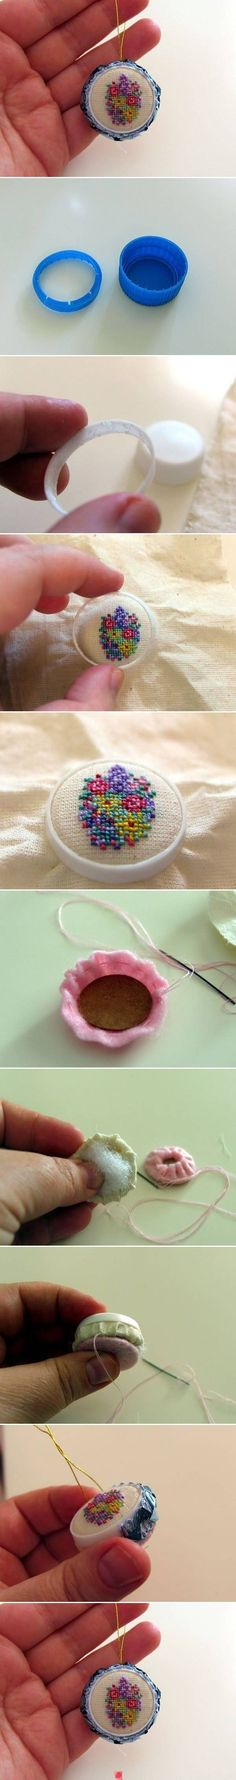 embroidery stitching using a soda pop soft drink bottle lid, cute pretty floral design, could be used as ornaments or jewelry ༺✿ƬⱤღ  http://www.pinterest.com/teretegui/✿༻